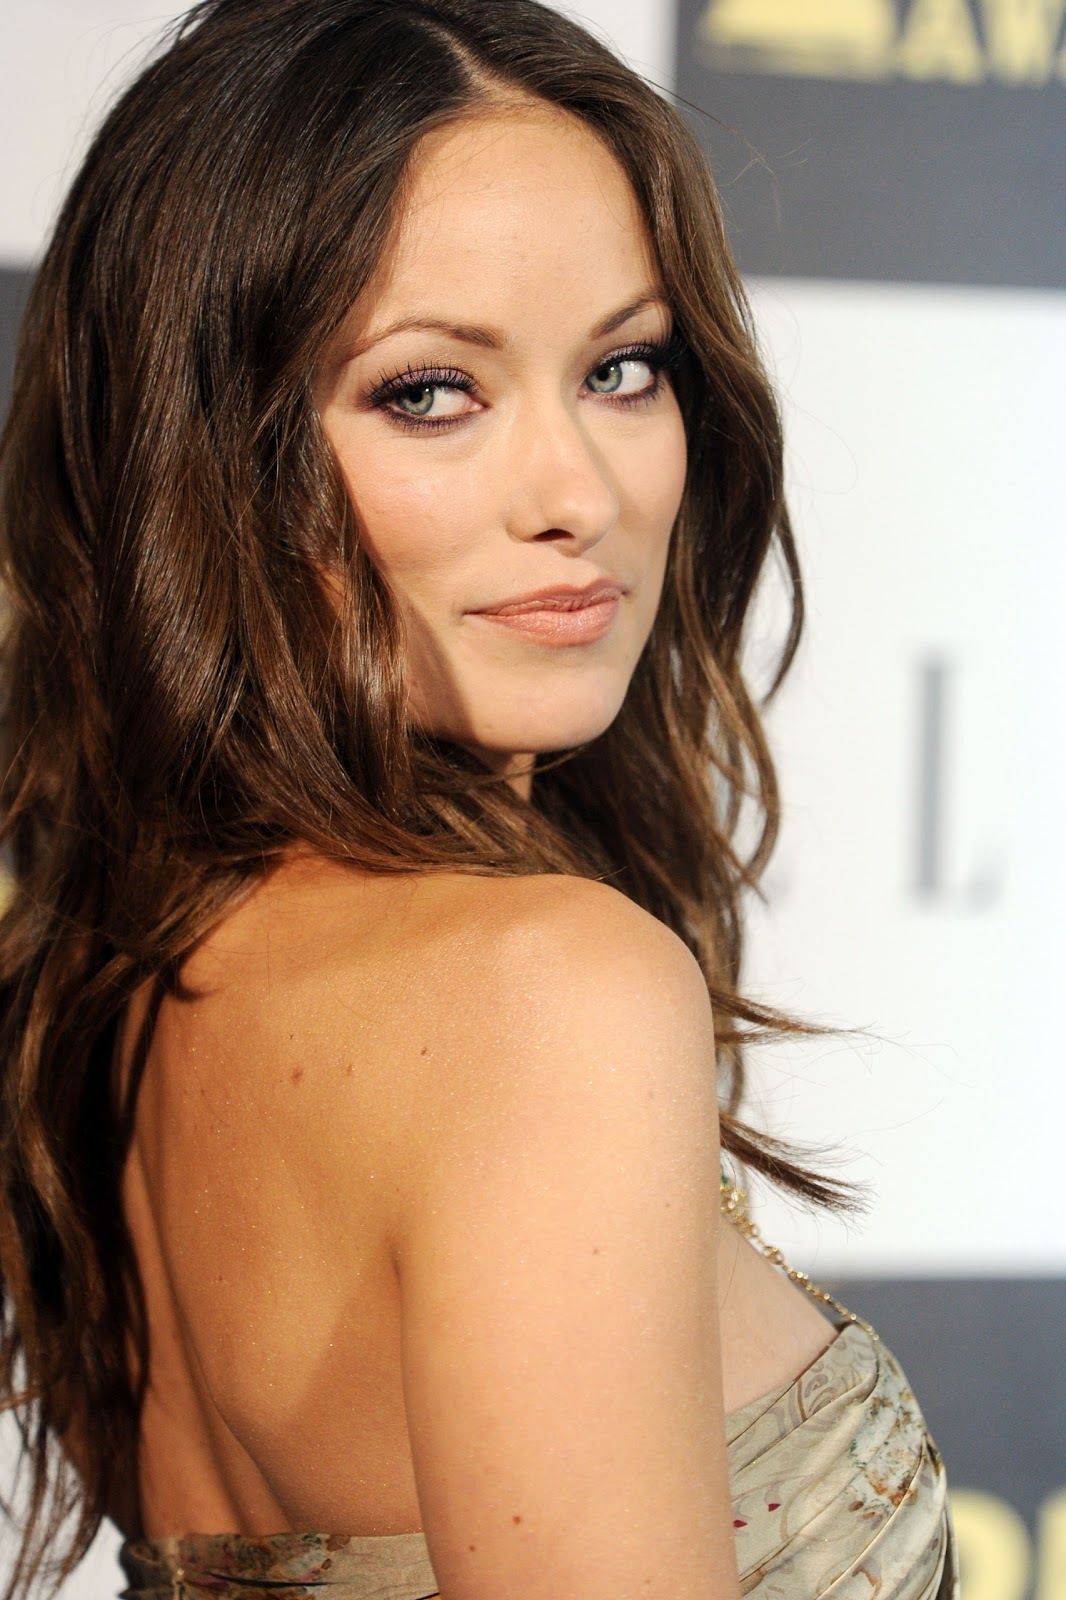 Olivia Wilde: Biography And Career